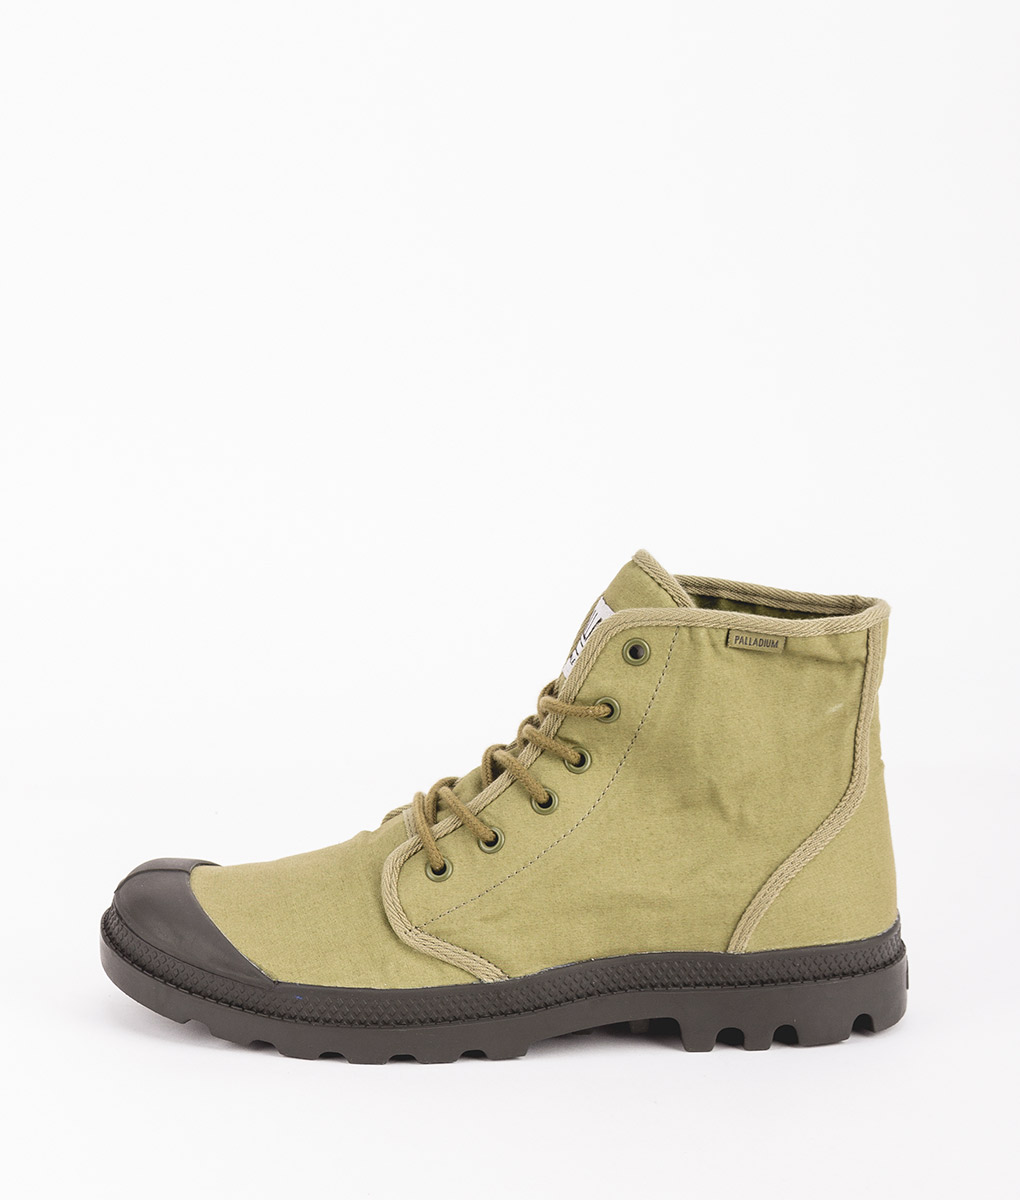 PALLADIUM Men Sneakers 75554 PAMPA HI ORIGINALE TC, Olive Beluga 84.99